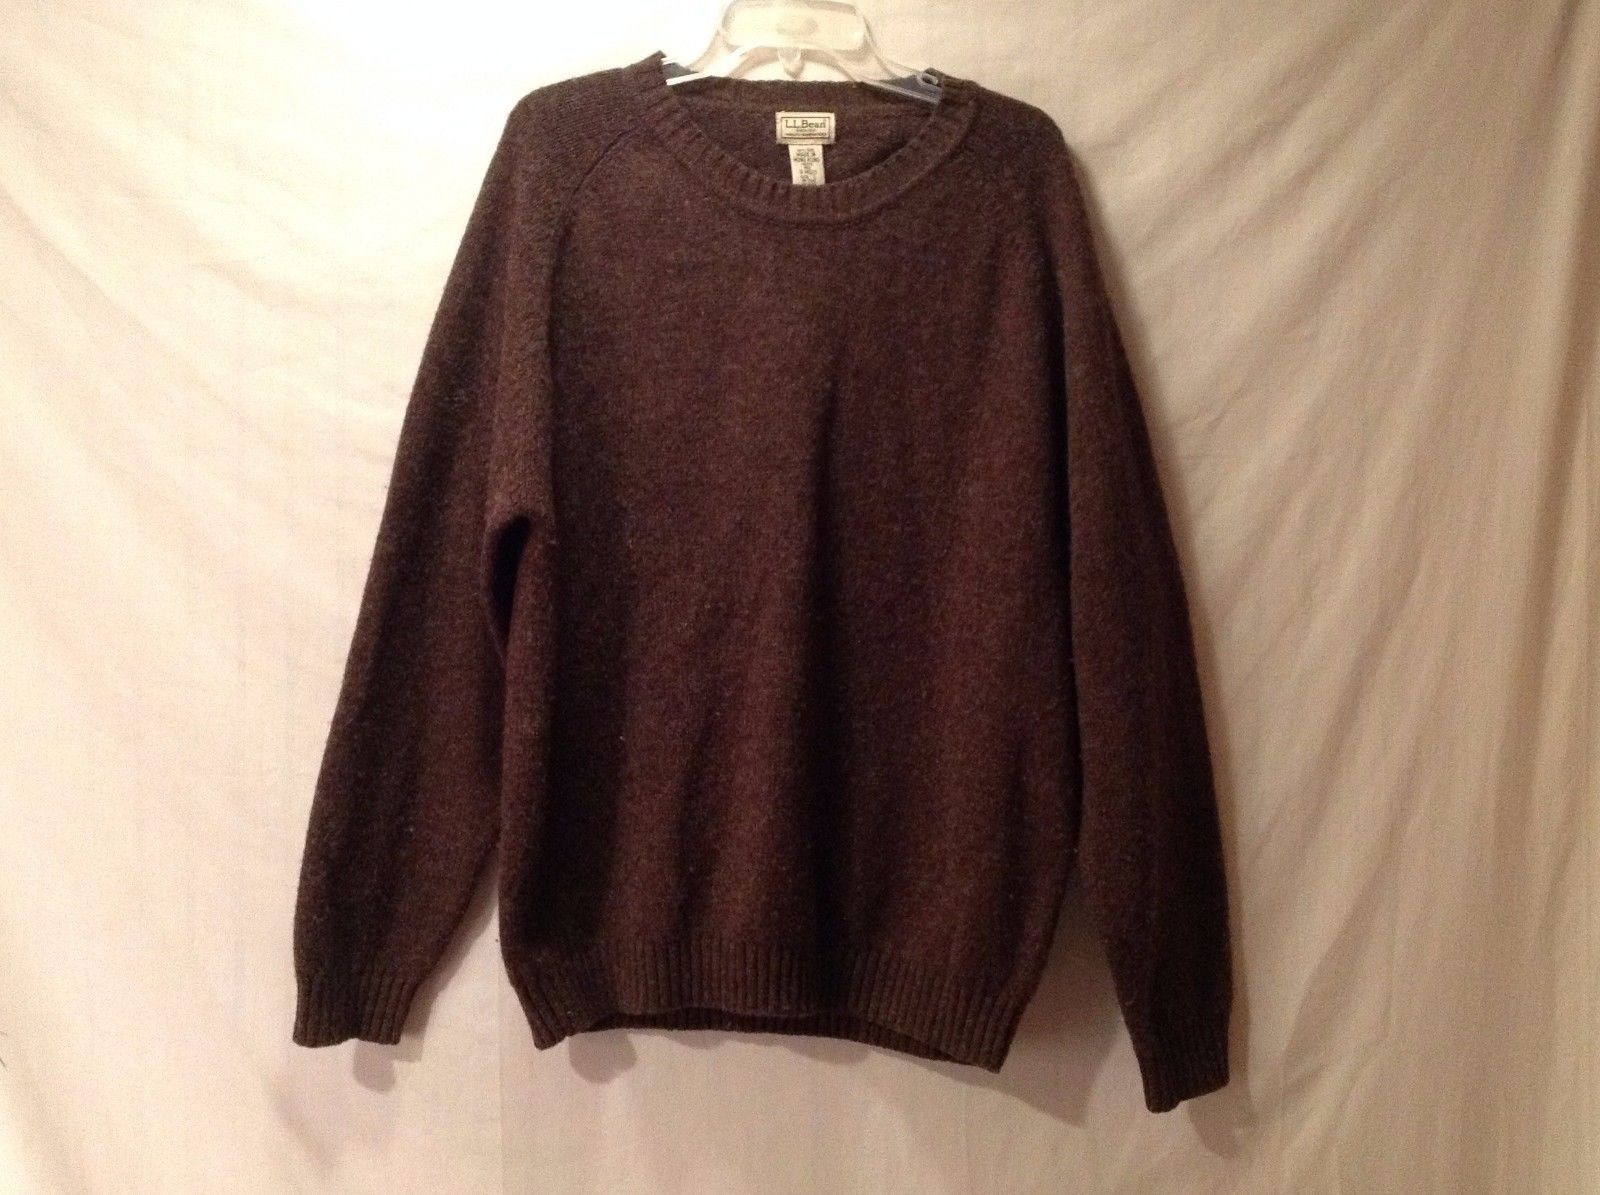 Good Condition L.L. Bean 100% Wool Brown Sweater Size L Crew Neck Men's